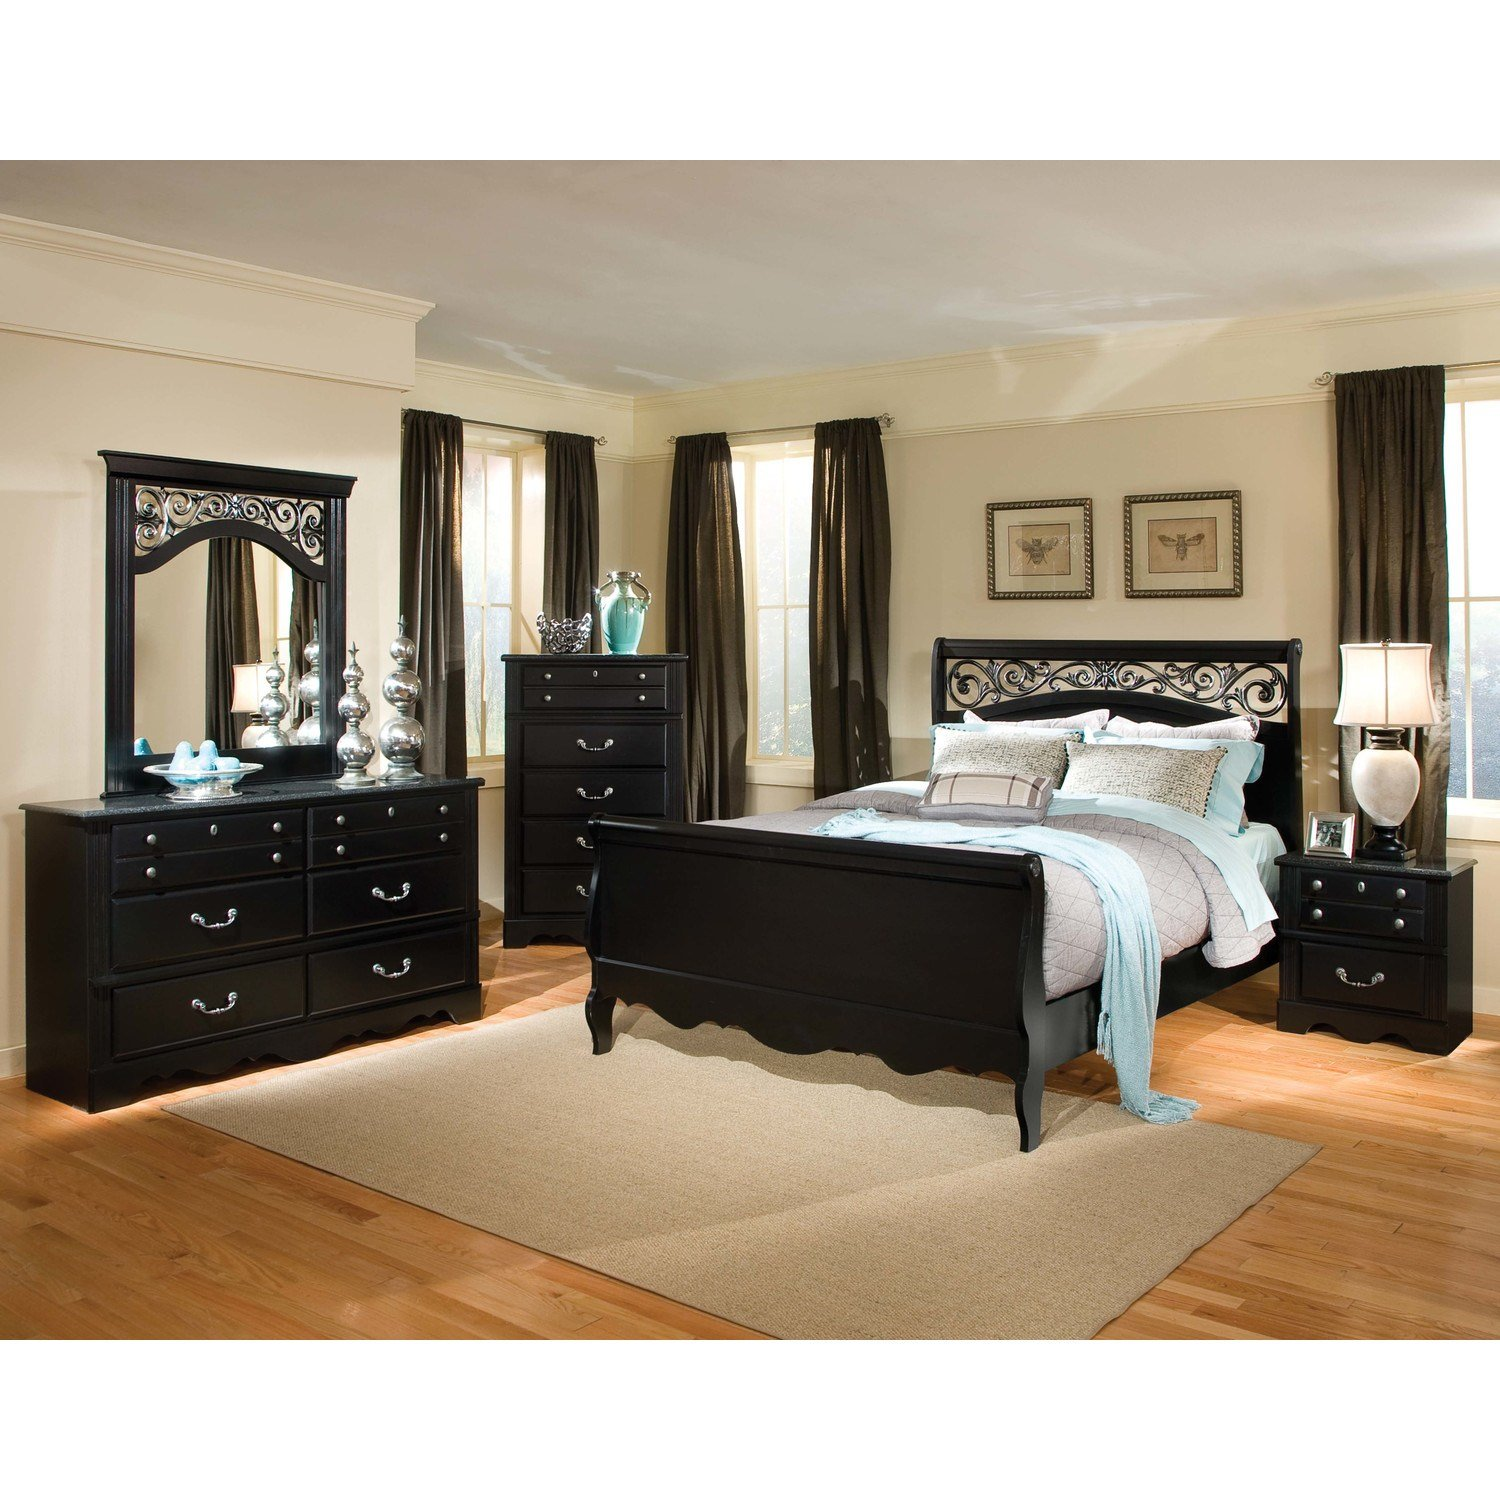 Best Black Gloss Bedroom Furniture Northern Ireland Home Delightful With Pictures